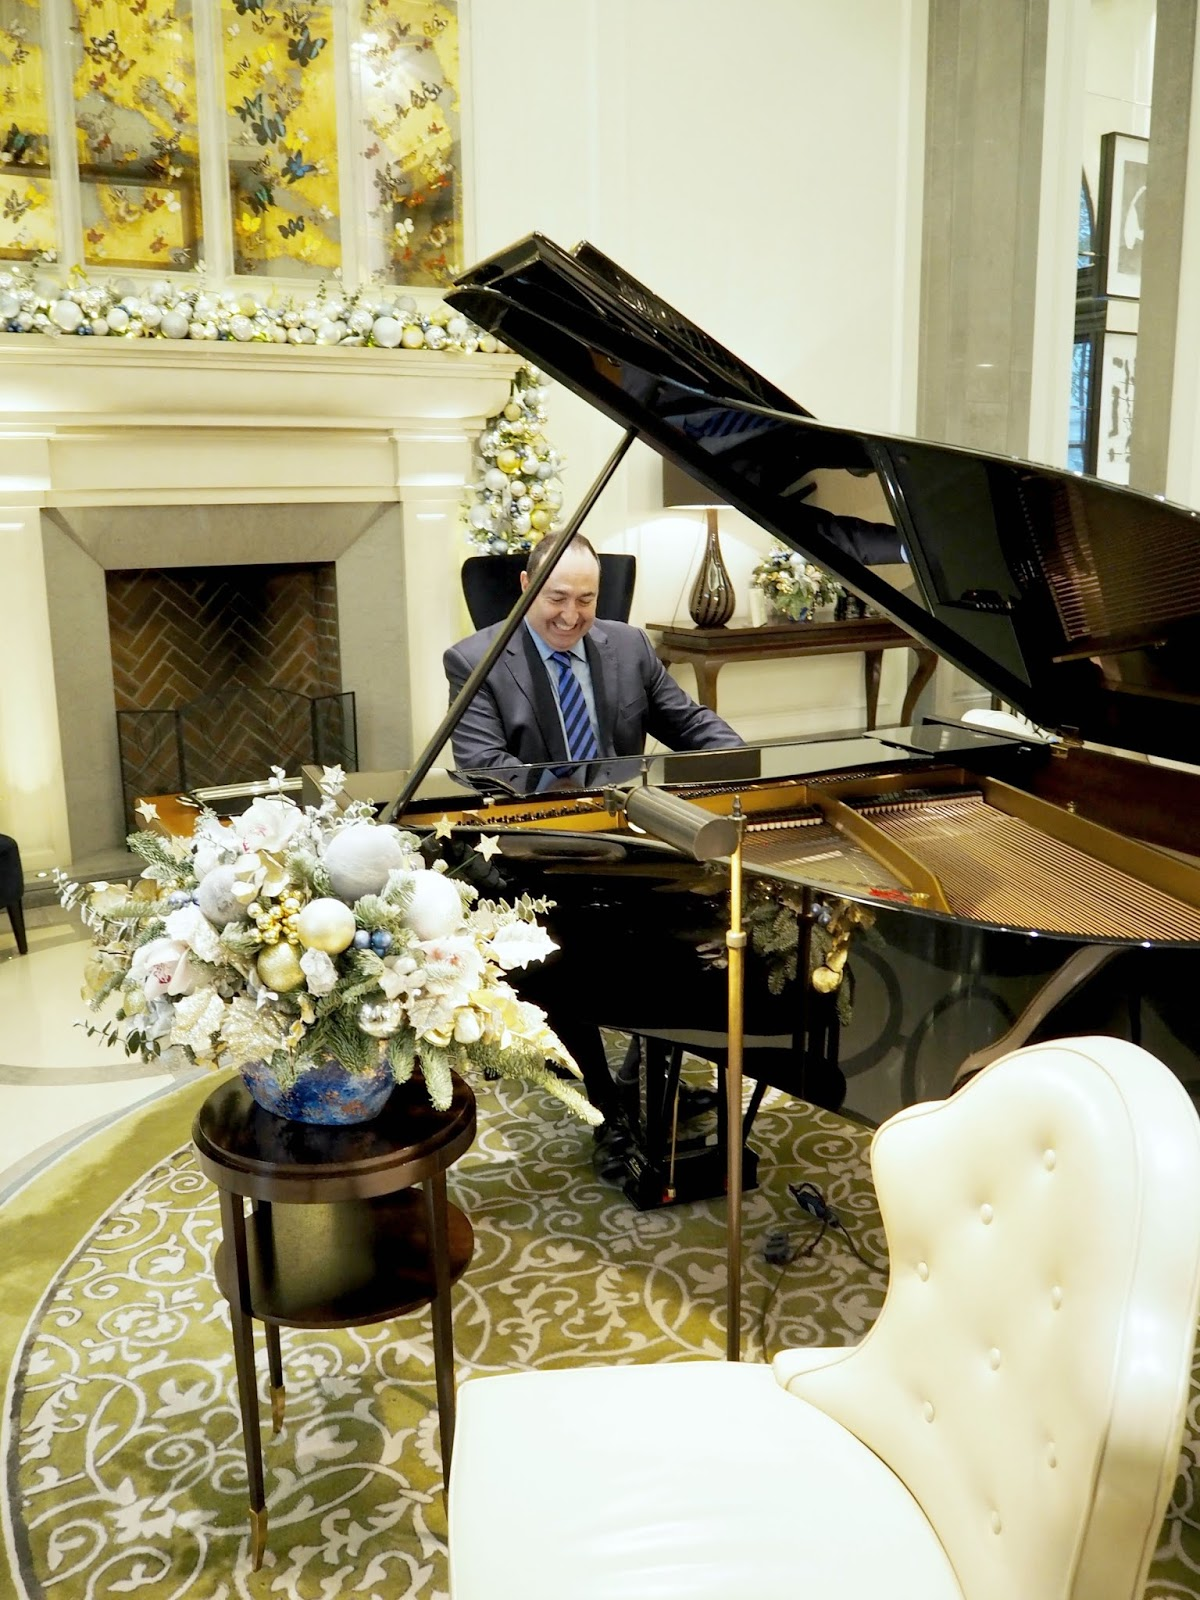 Kevin Lee playing the piano at The Corinthia Hotel